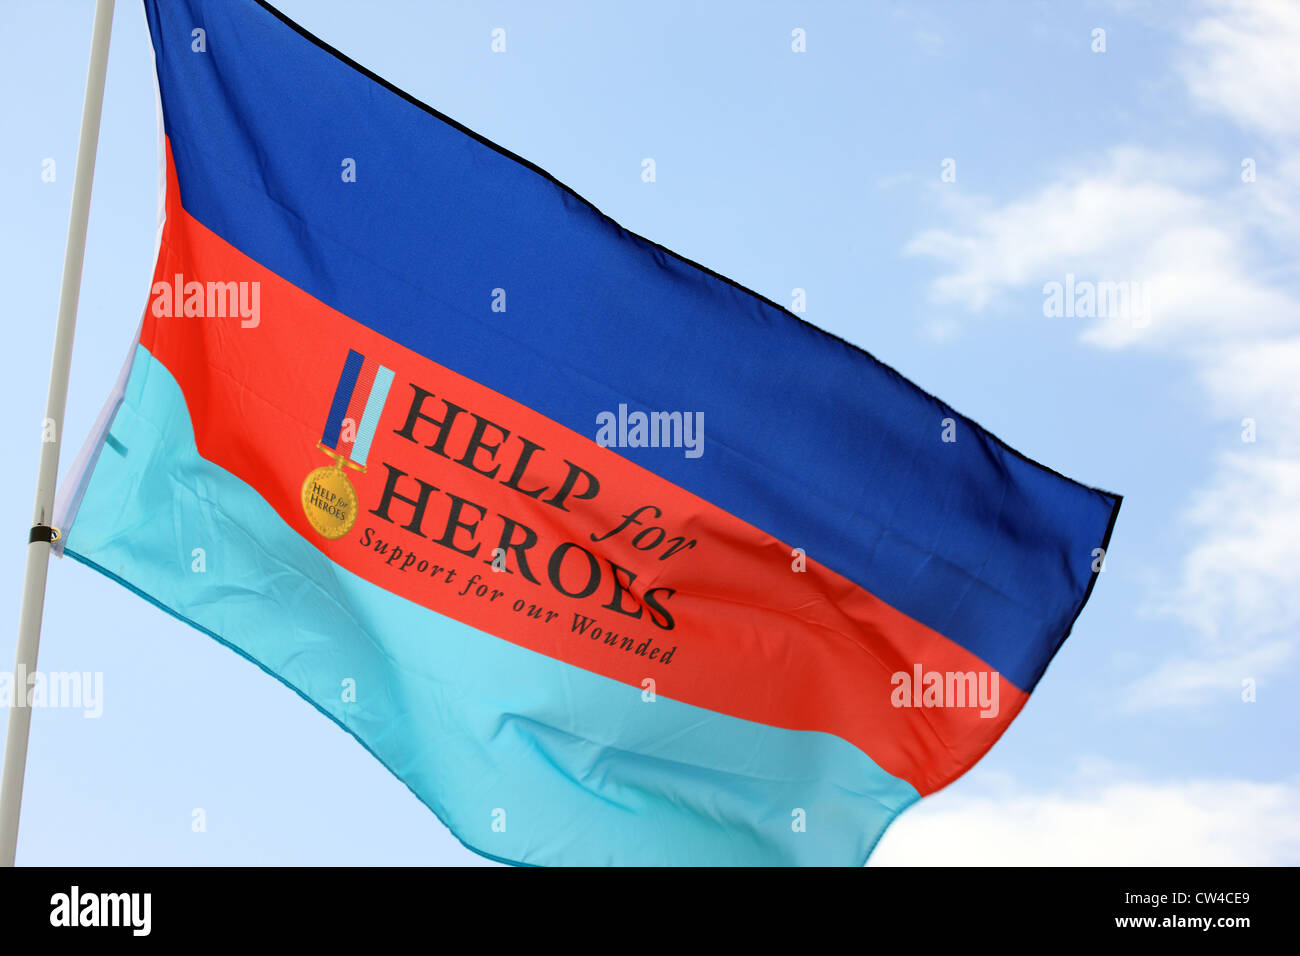 Help for Heroes flag fluttering in the breeze - Stock Image